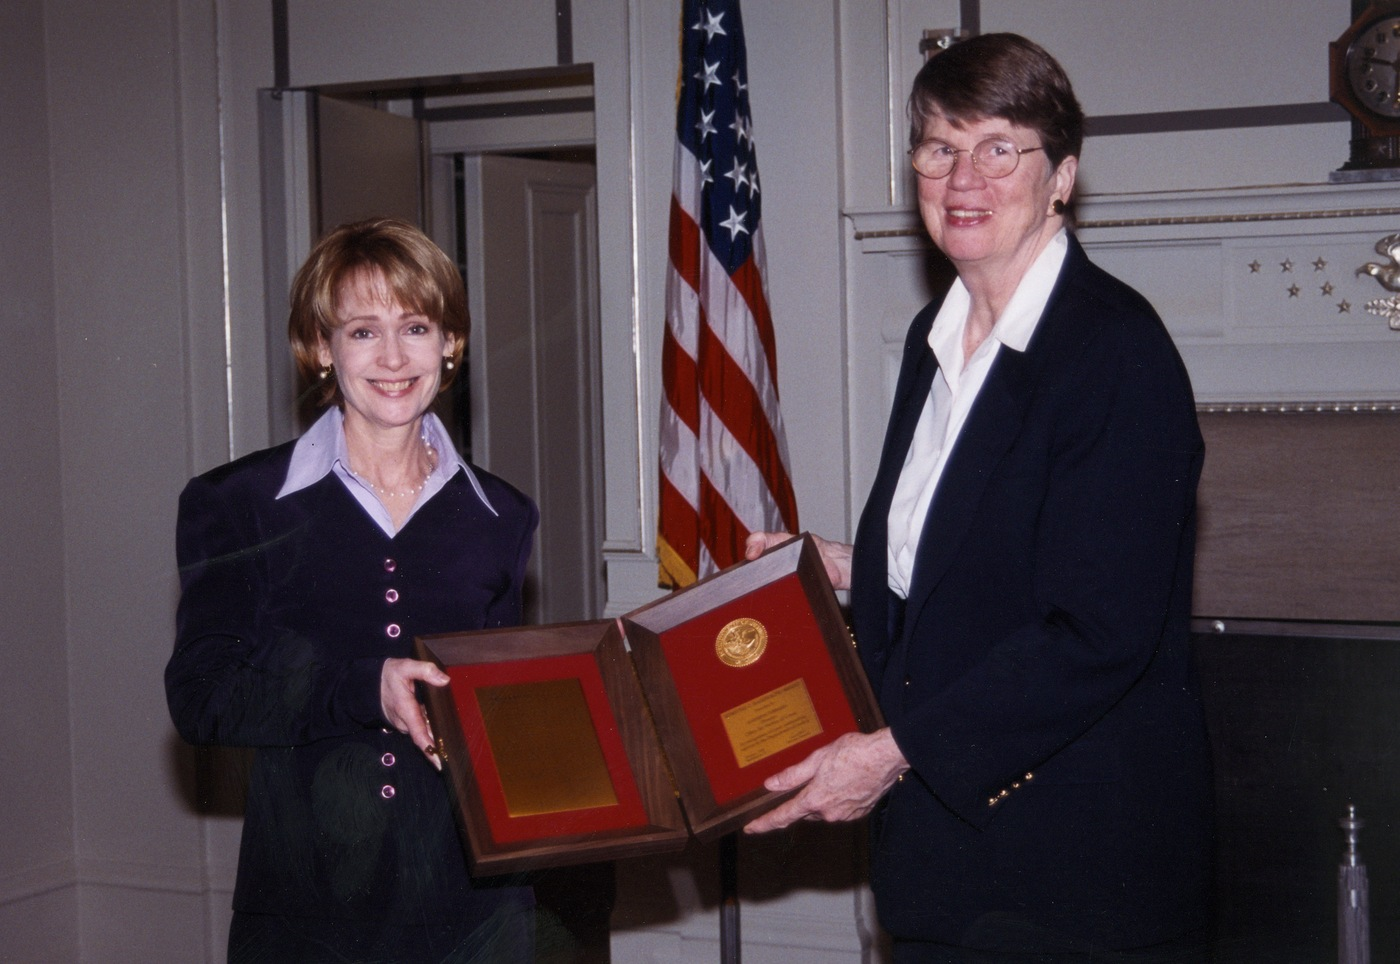 Kathryn Turman receives a commendation from Attorney General Janet Reno in 2000.